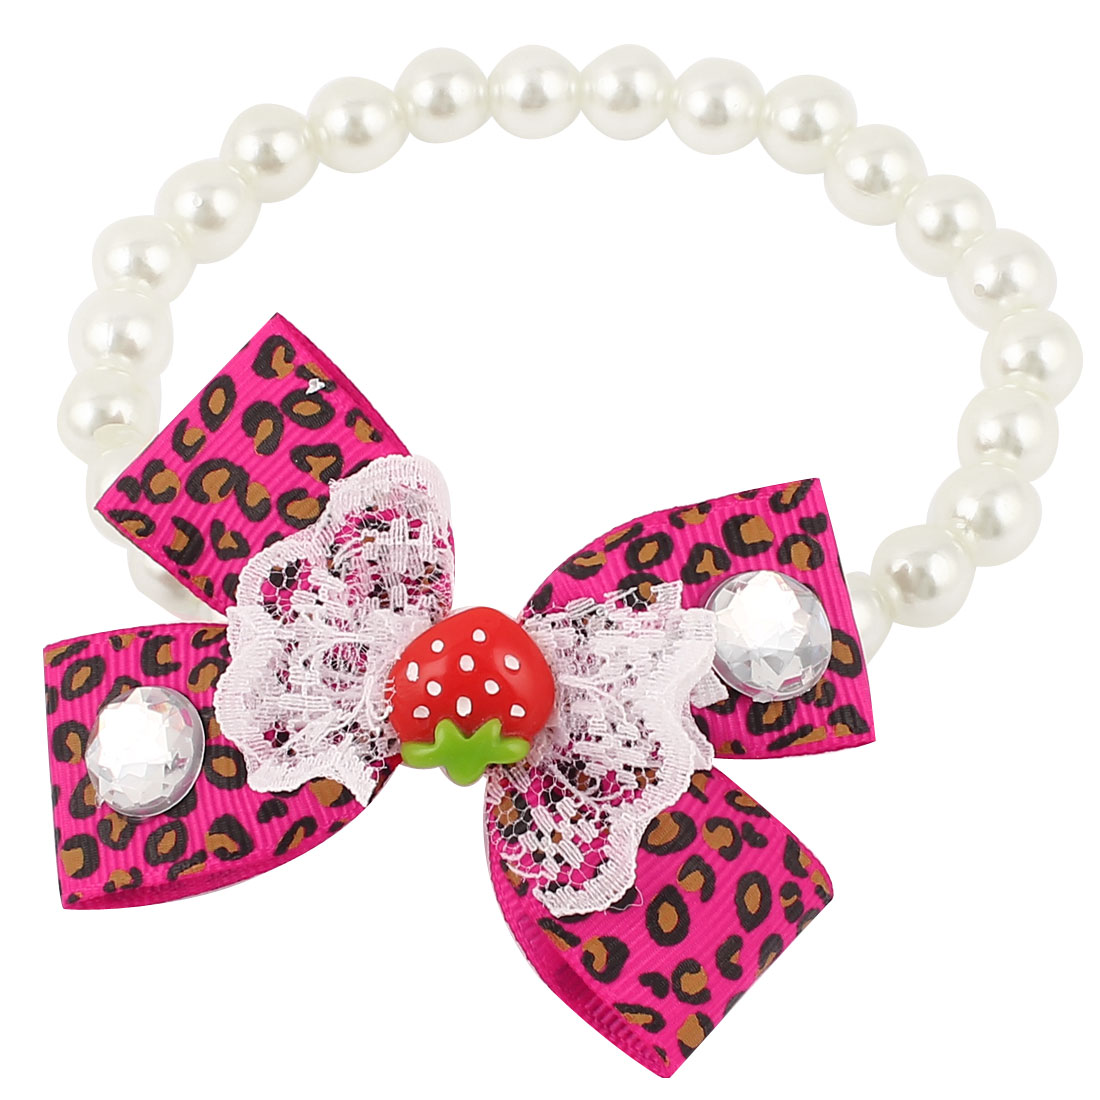 Bowtie Lace Faux Crystal Accent Pet Dog Plastic Beads Pearls Collar Necklace White Fuchsia S